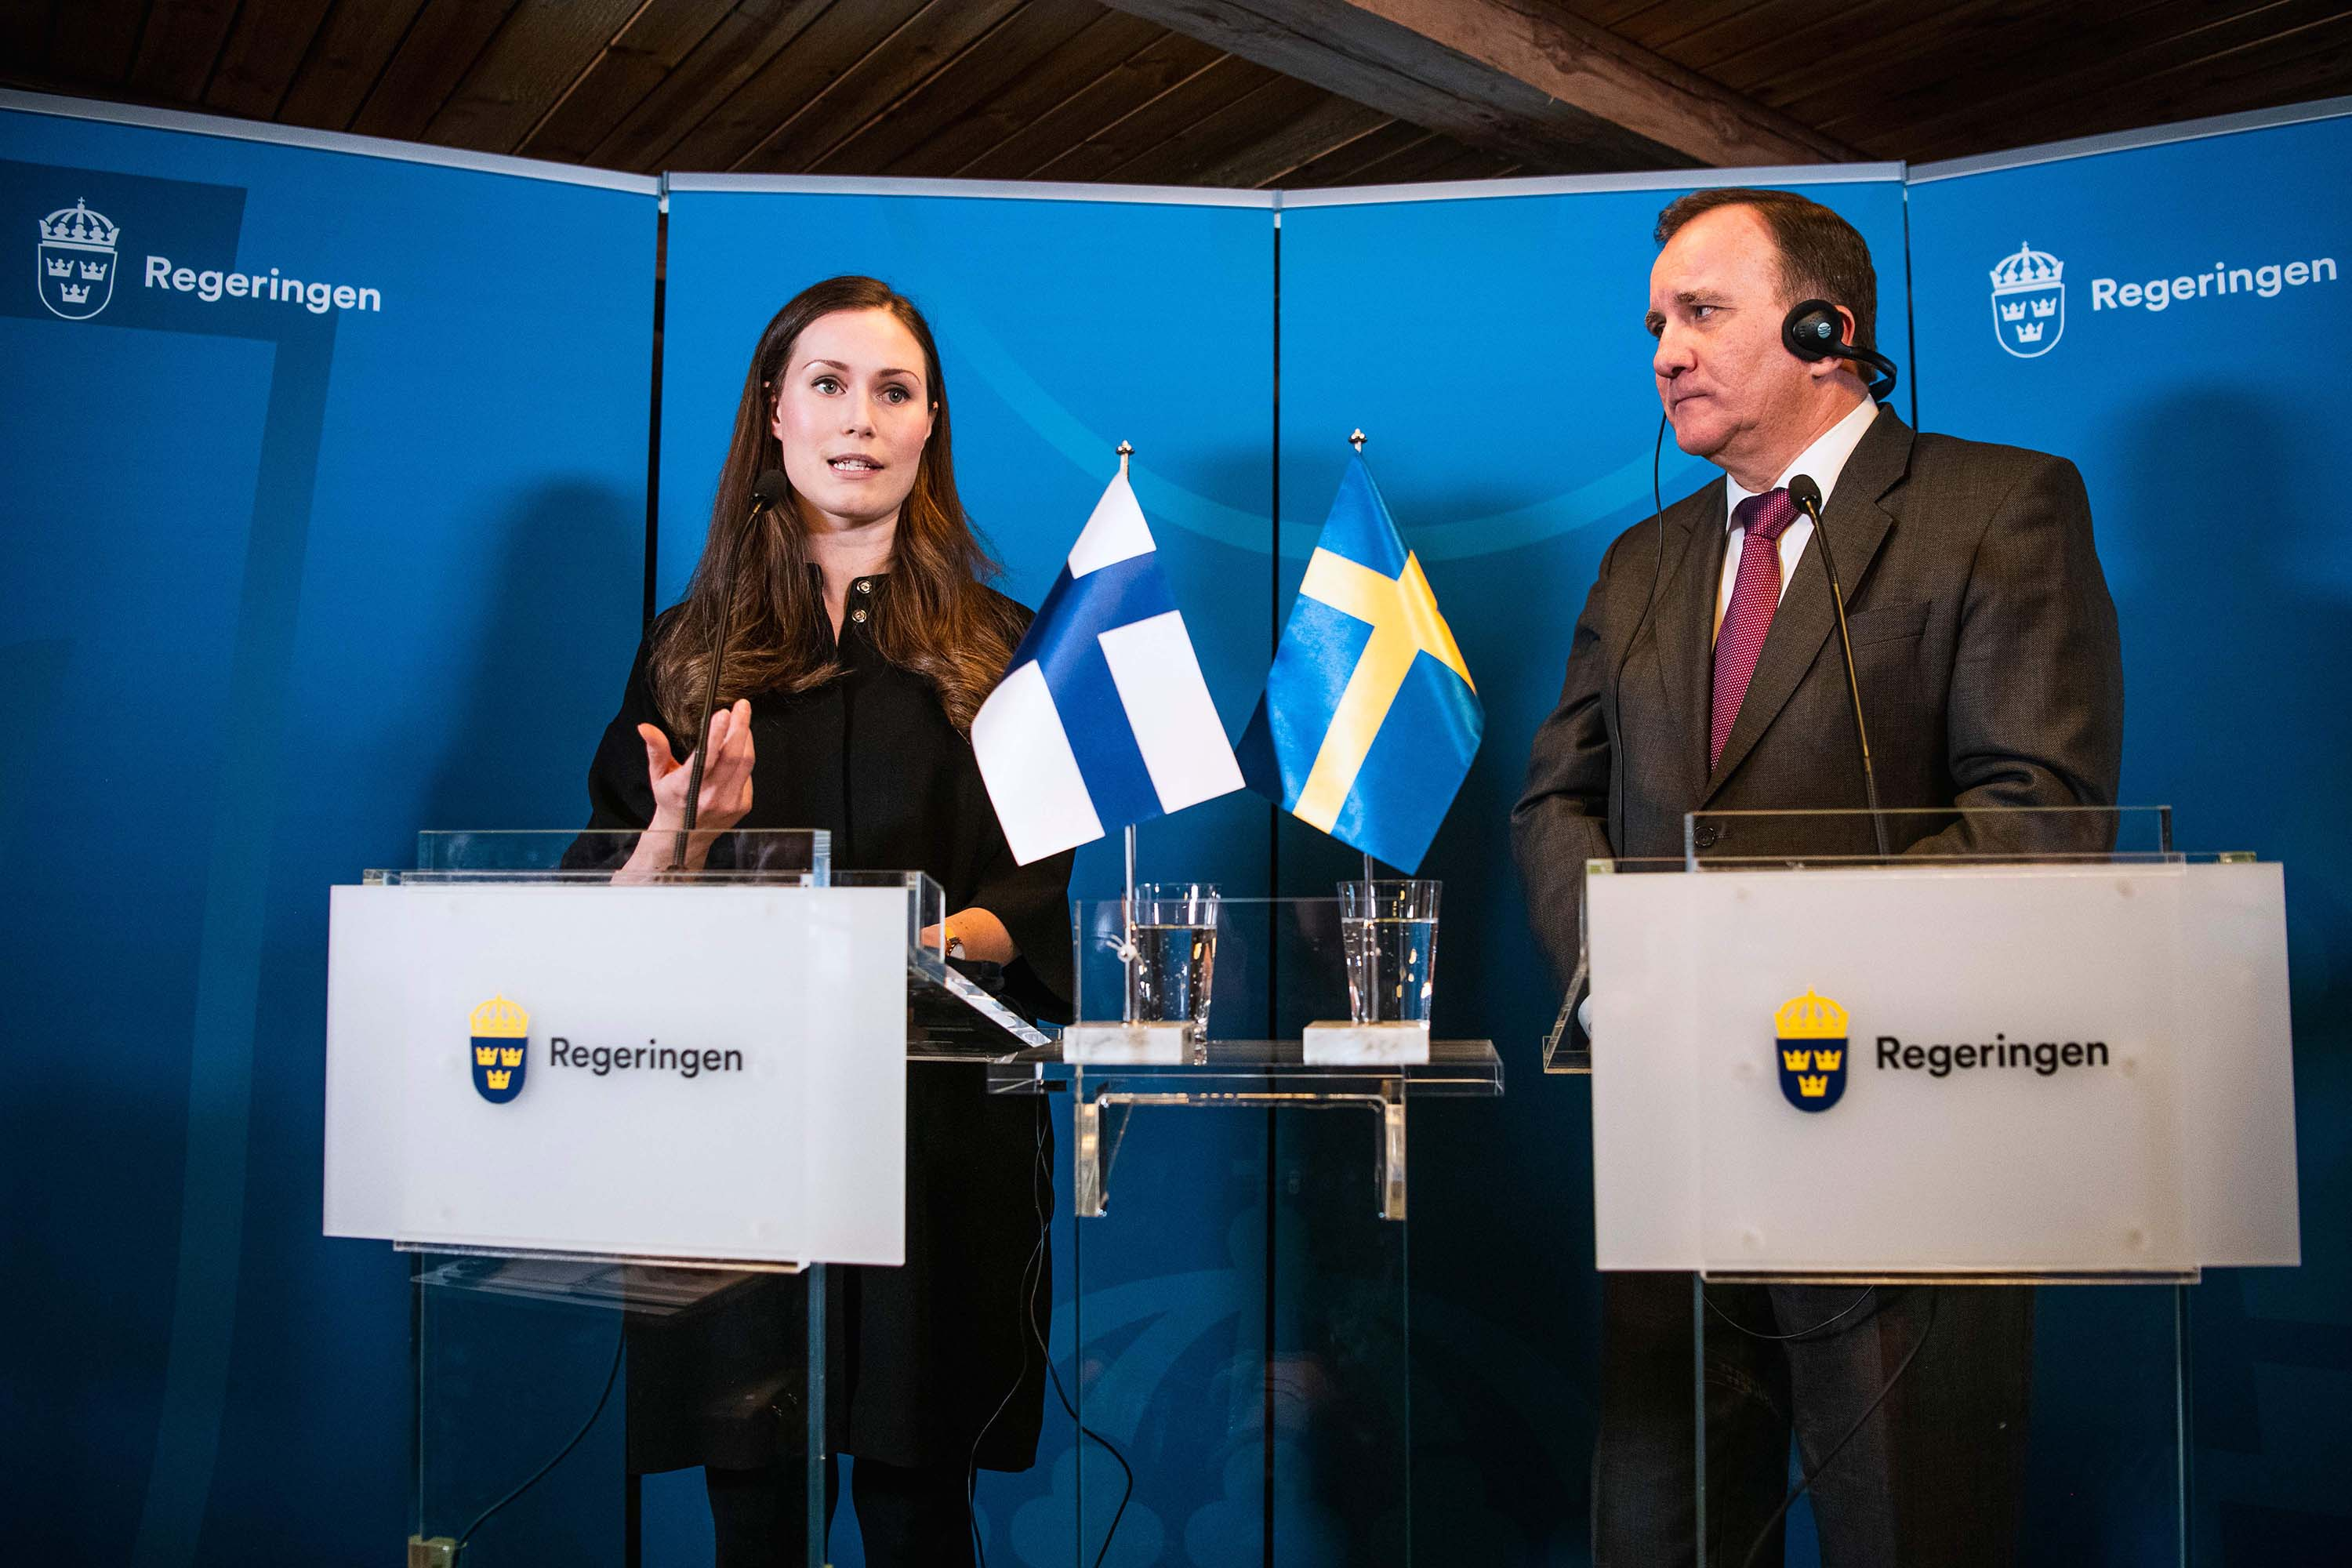 Finnish Prime Minister Sanna Marin and Swedish Prime minister Stefan Lofven give a press conference following a meeting in Stockholm, Sweden on January 8.